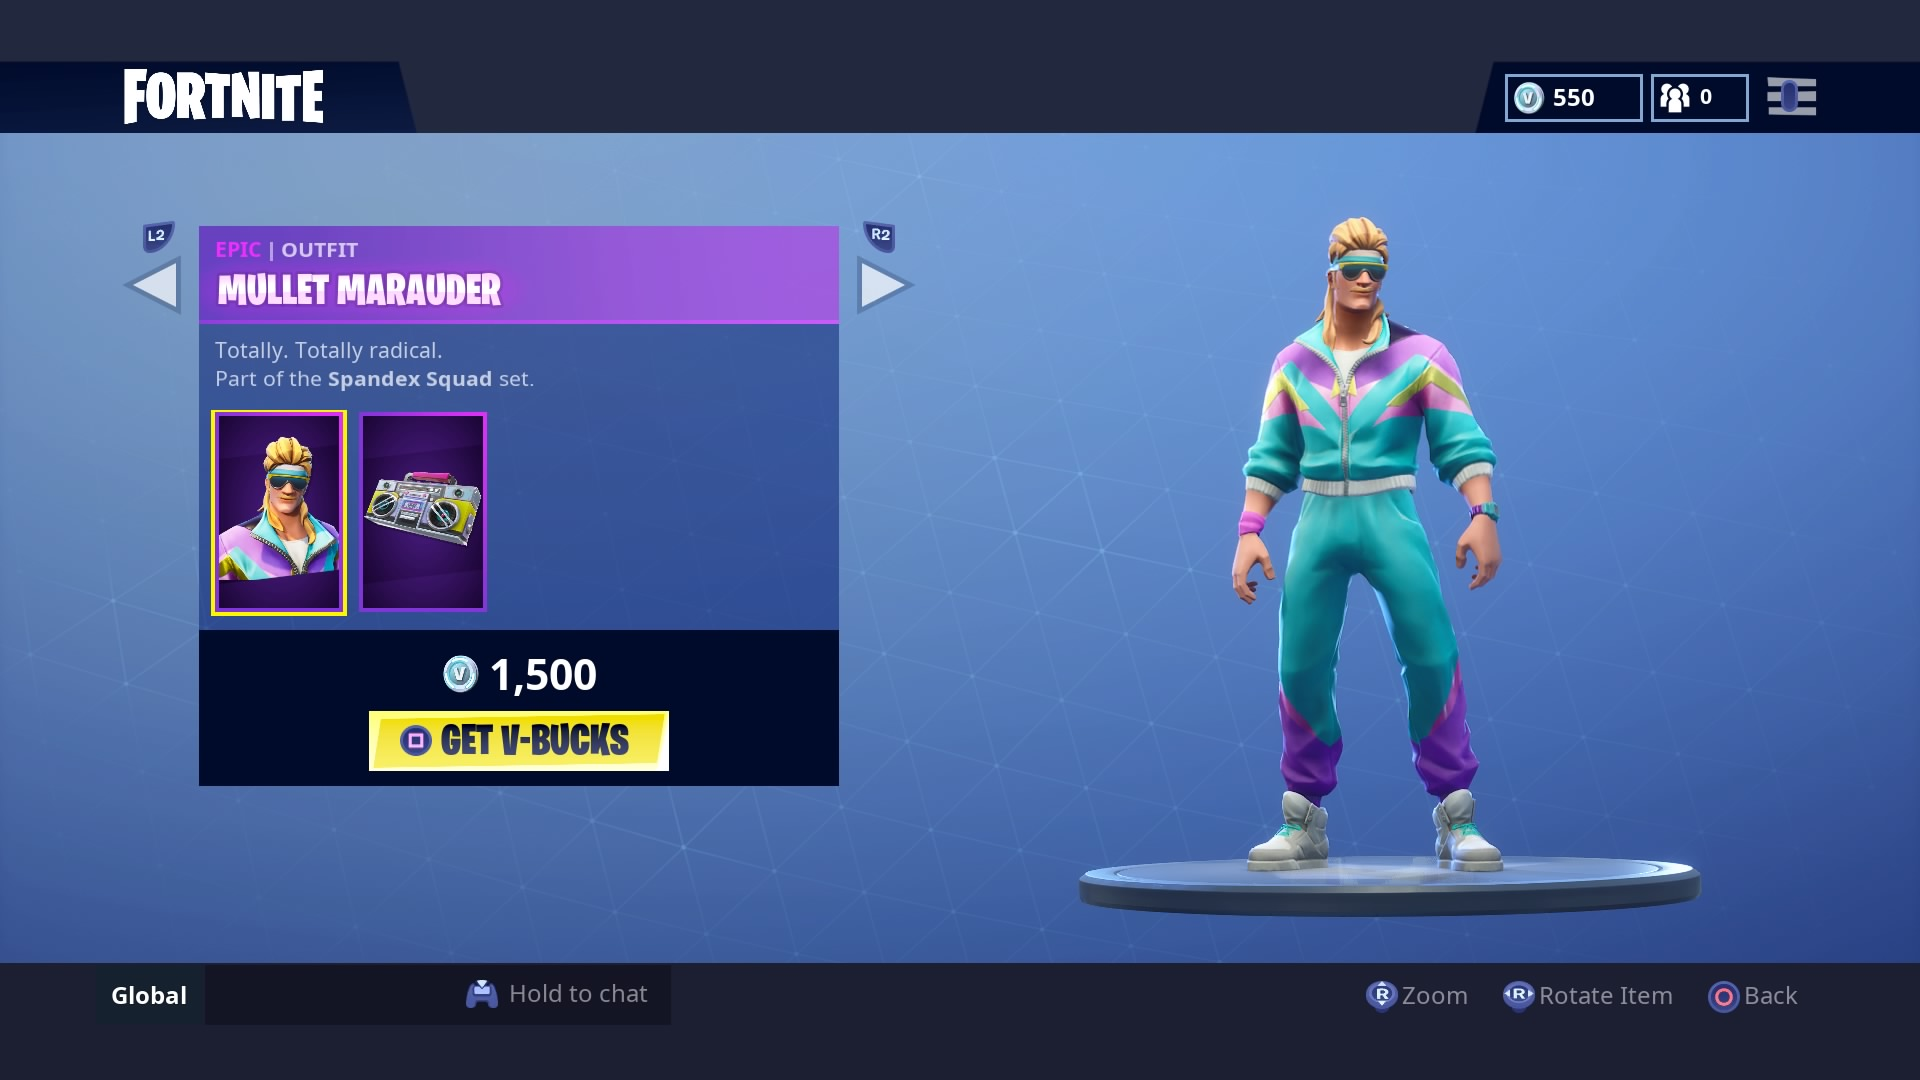 fortnite mullet marauder wallpaper 64857